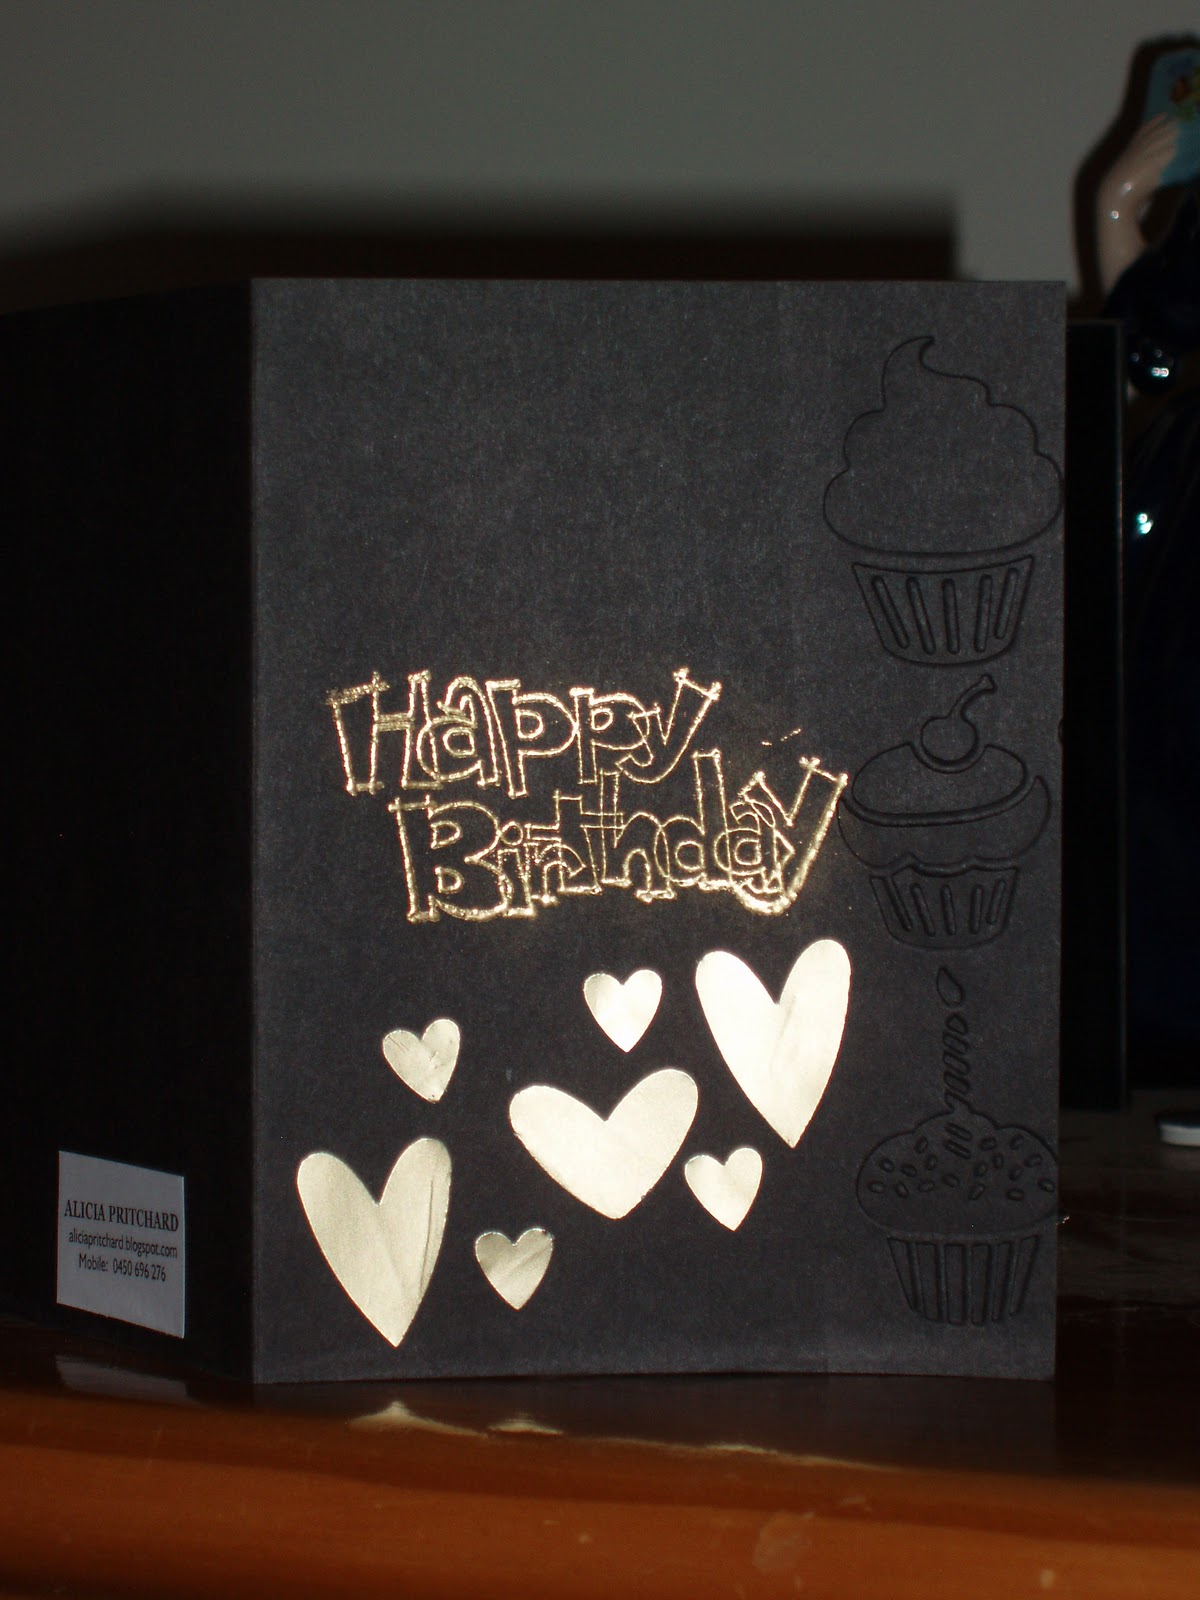 Embossed Some Cupcakes On Black Card And Used Clear Versamark Stampin Up Gold Embossing Powder To Create Happy Birthday From Outlined